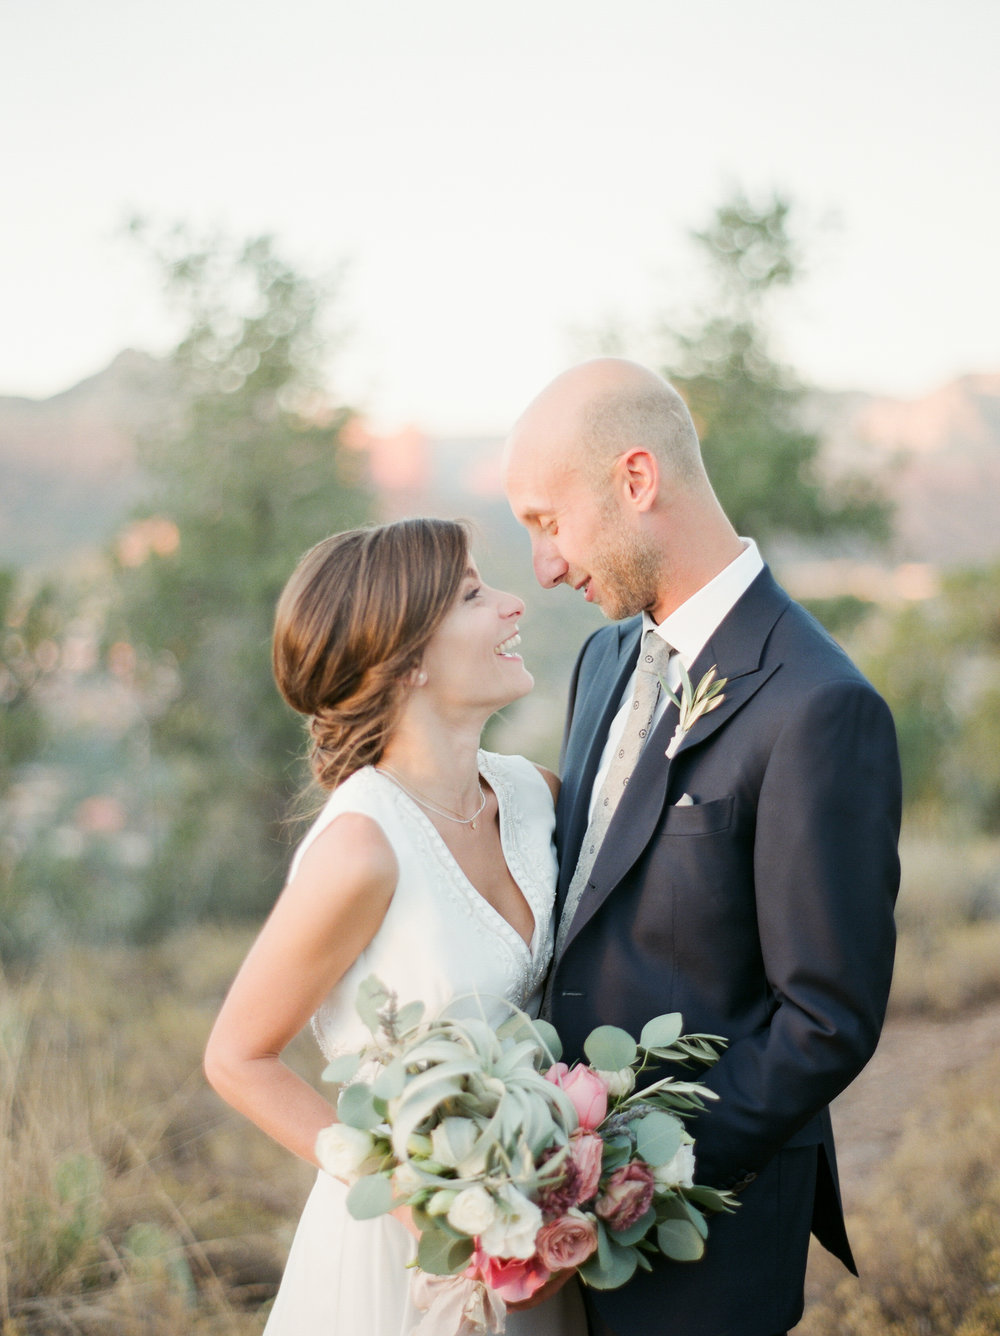 An Intimate Sedona Wedding Nestled in the Arizona Red Rocks  - Tremaine Ranch - AZ Arizona Wedding & Event, Vintage, Furniture, Tableware, & Specialty Rentals in Phoenix, Tucson, Flagstaff, Sedona, Tempe, Chandler, Mesa, Gilbert, Prescott, Payson 51.jpg